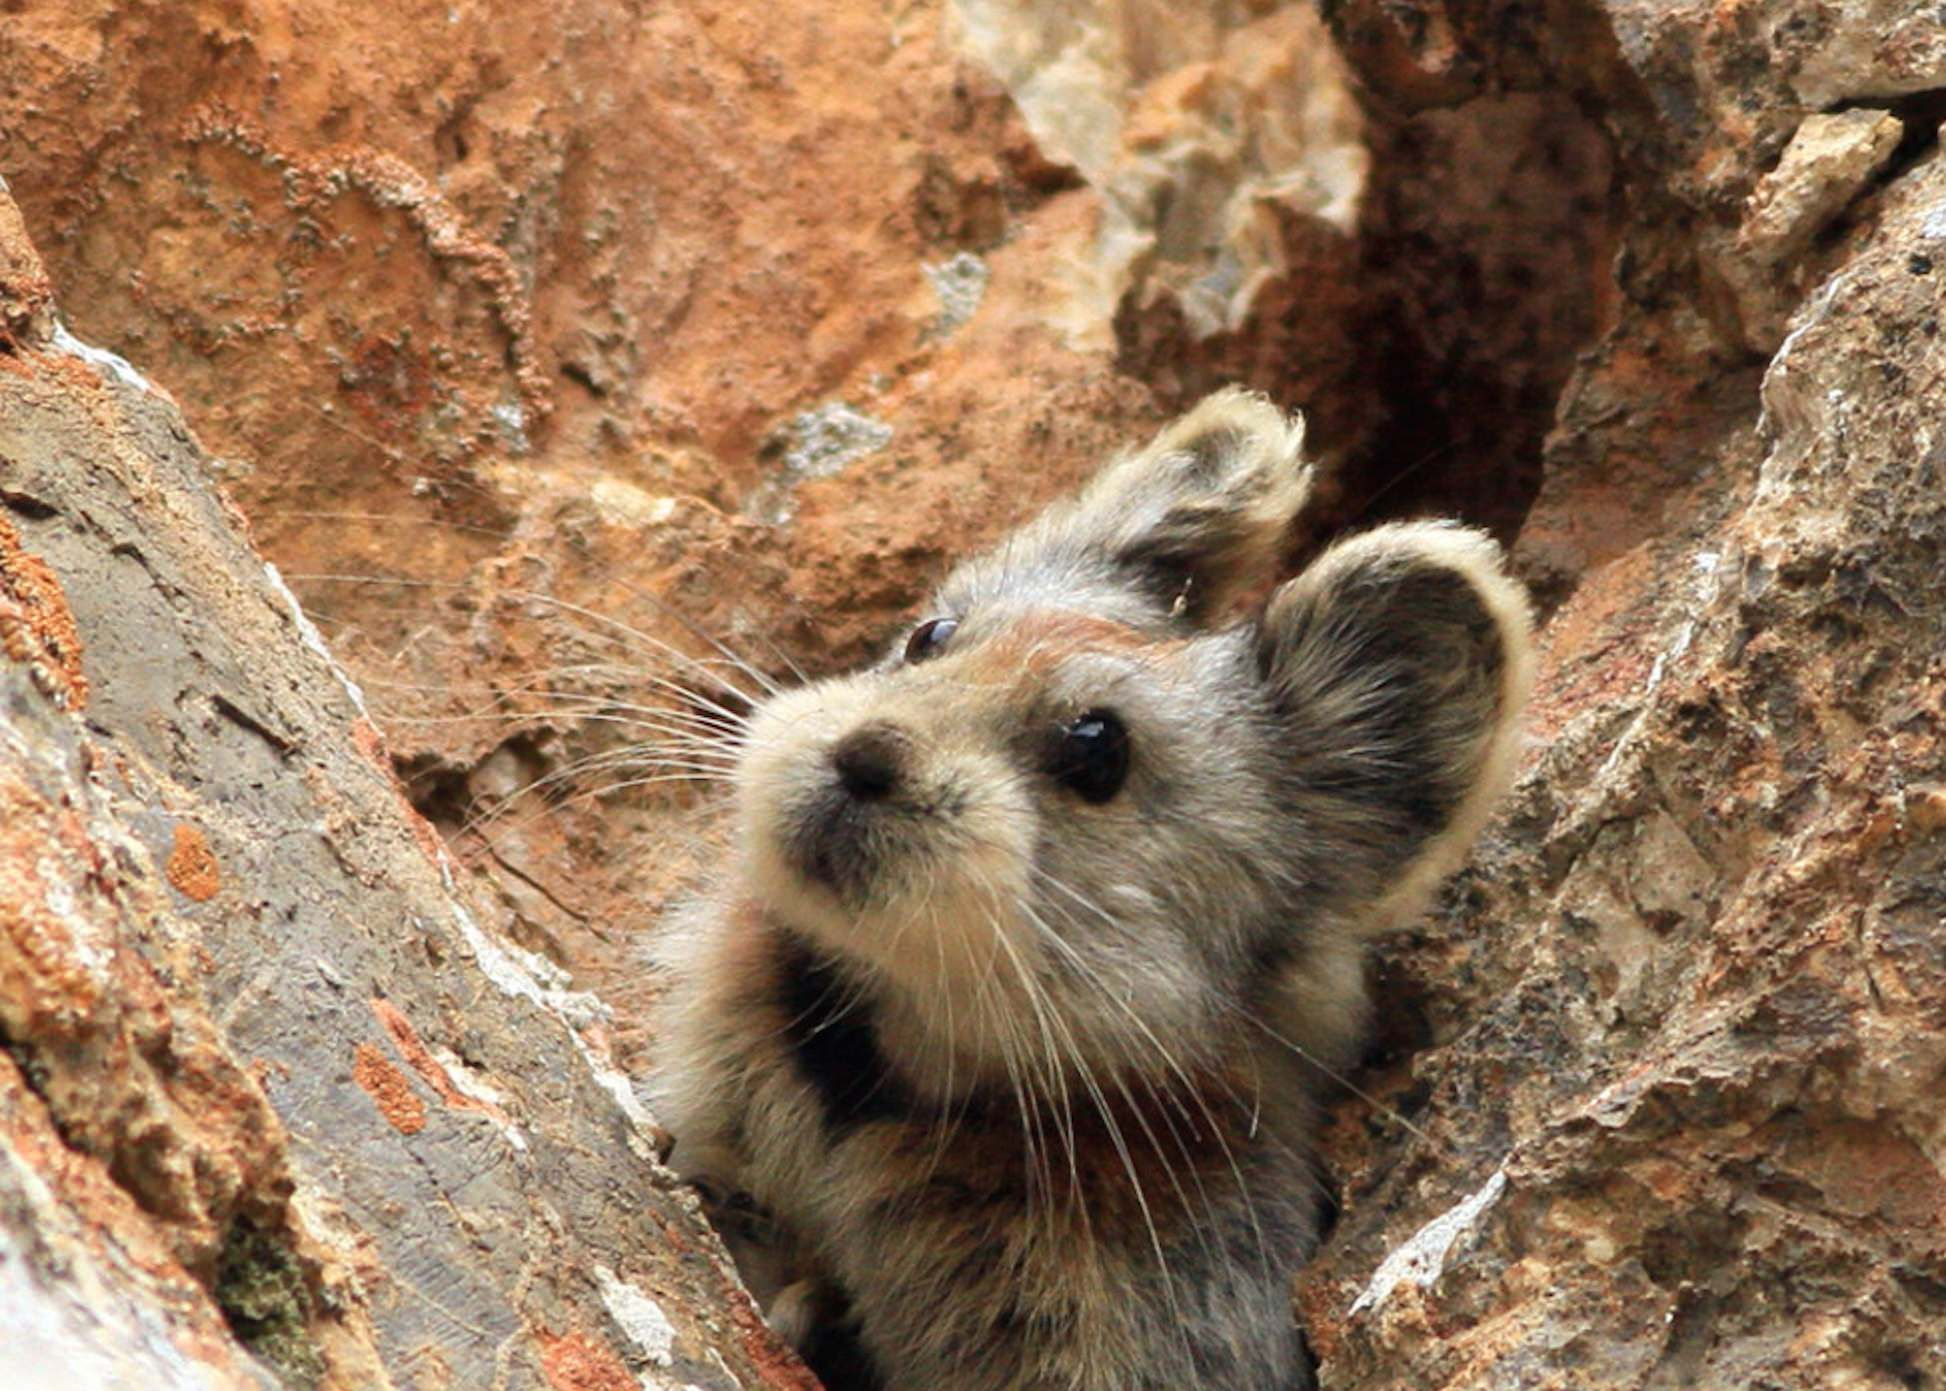 The endangered and rare Chinese Ili Pika are not having